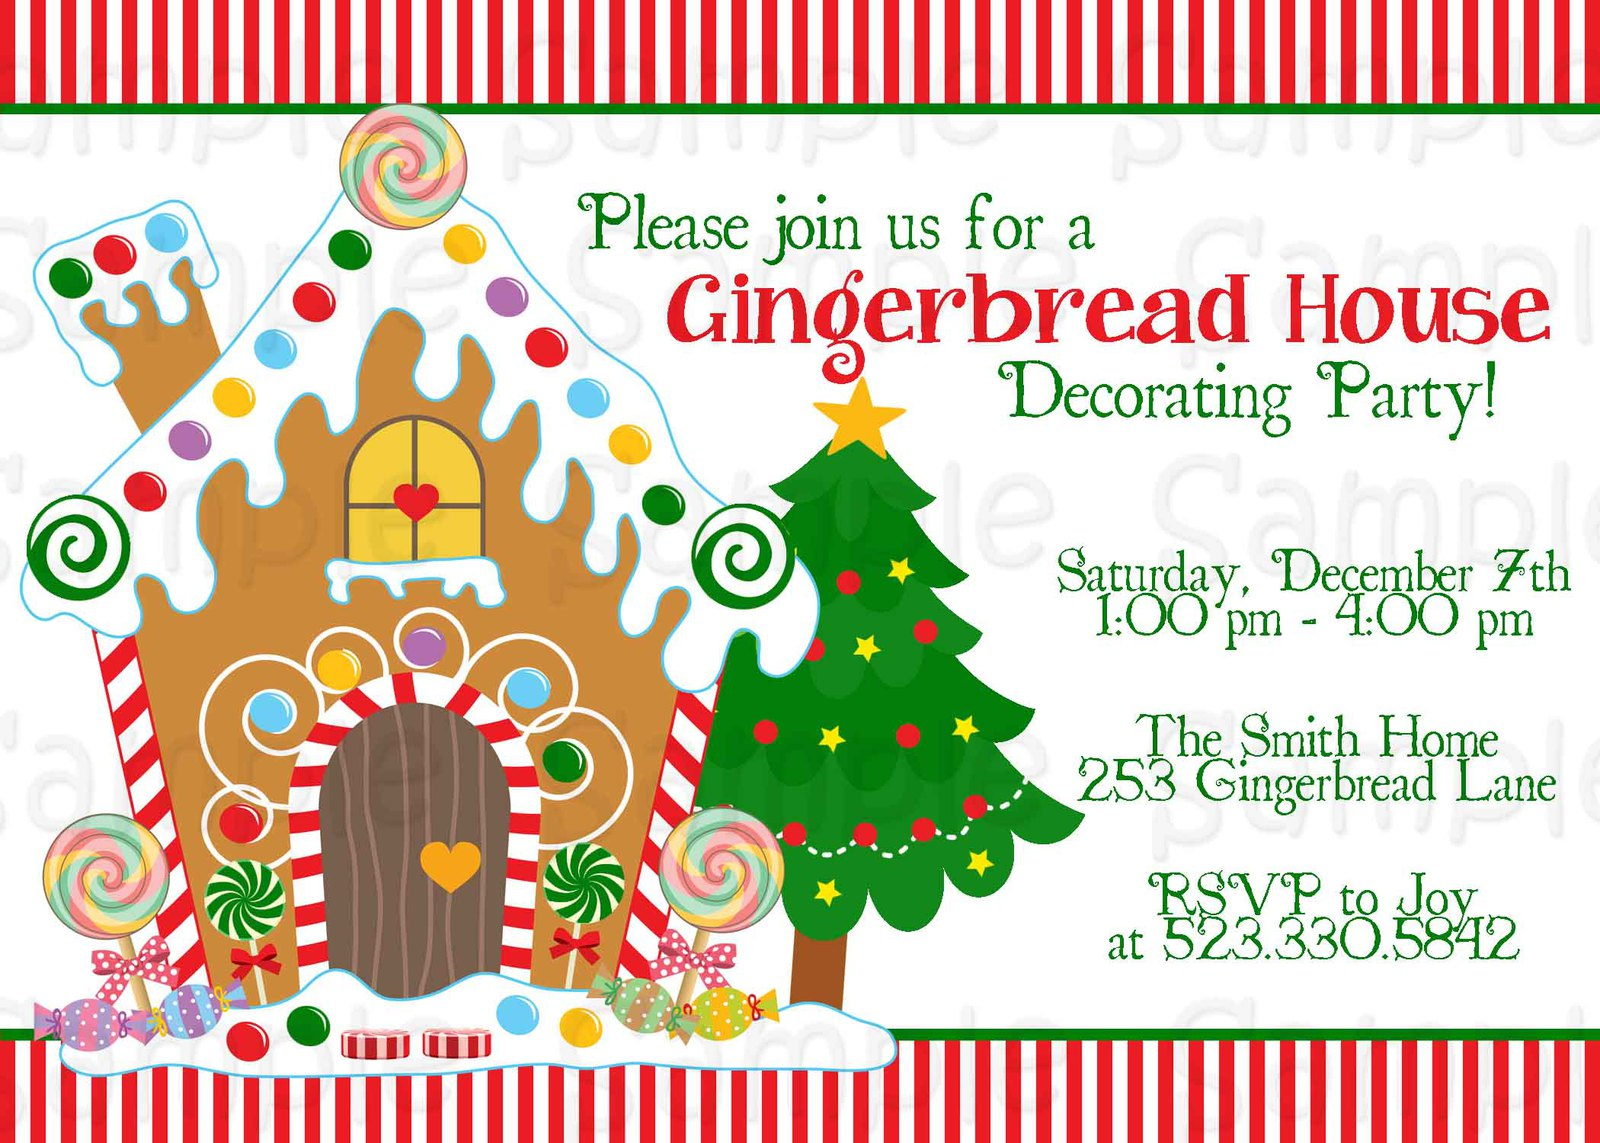 Gingerbread house decorating party invitation christmas Gingerbread house decorating party invitations